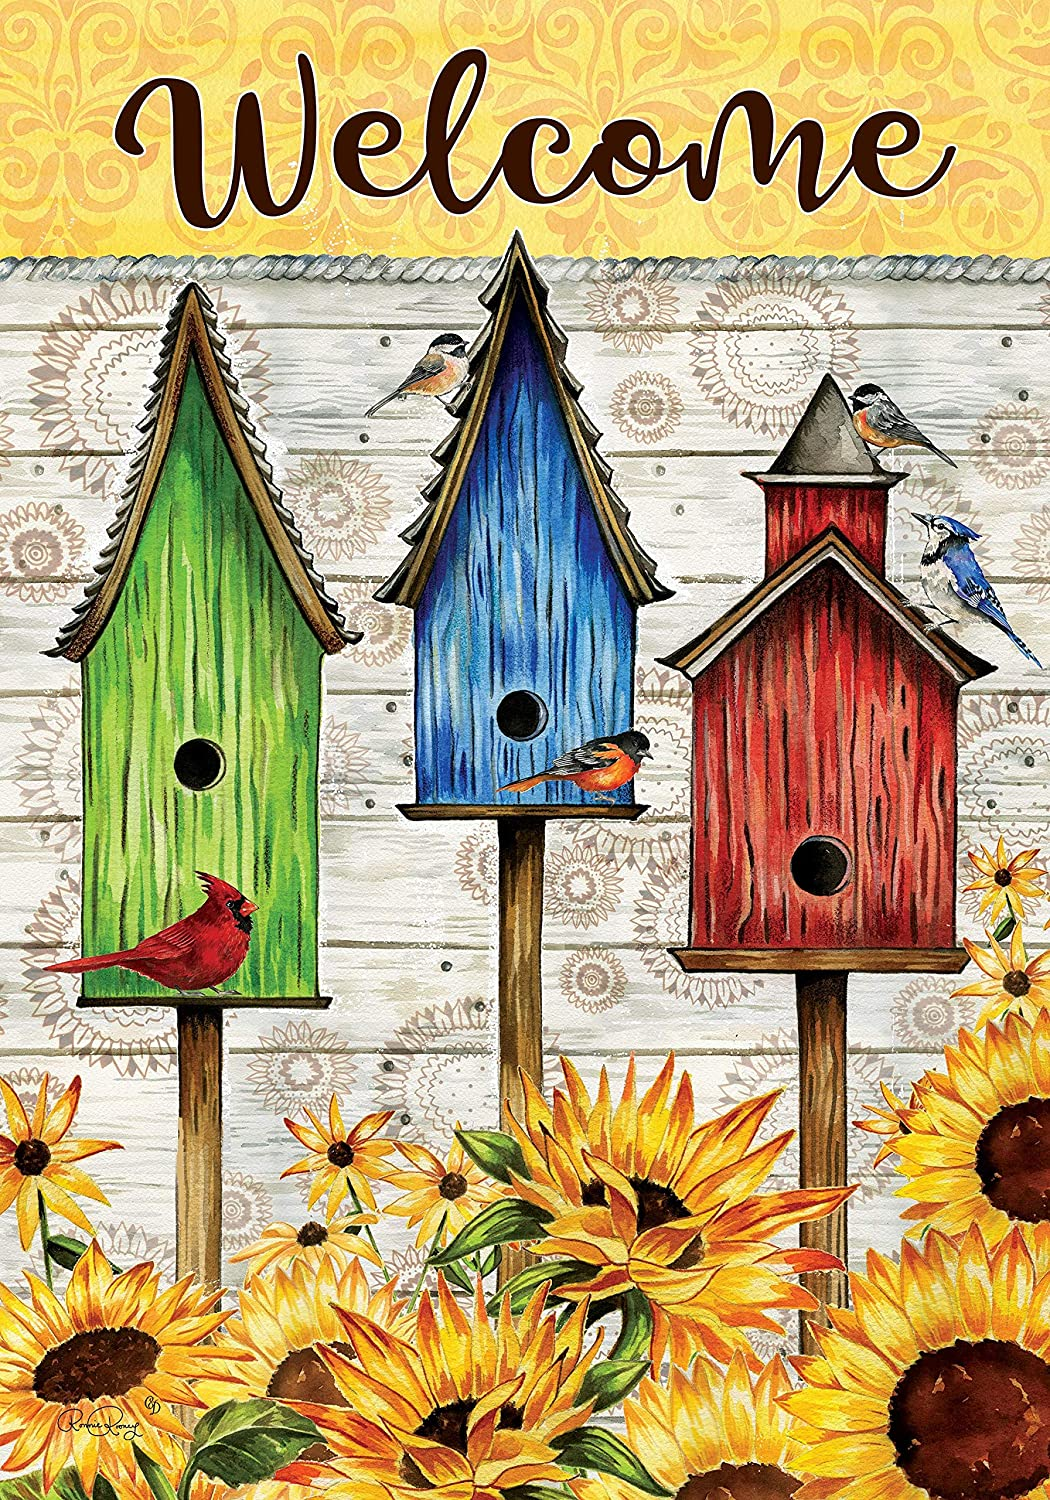 Custom Decor Sunny Birdhouse Welcome - Garden Size, Decorative Double Sided, Licensed and Copyrighted Flag - Printed in The USA Inc. - 12 Inch X 18 Inch Approx. Size